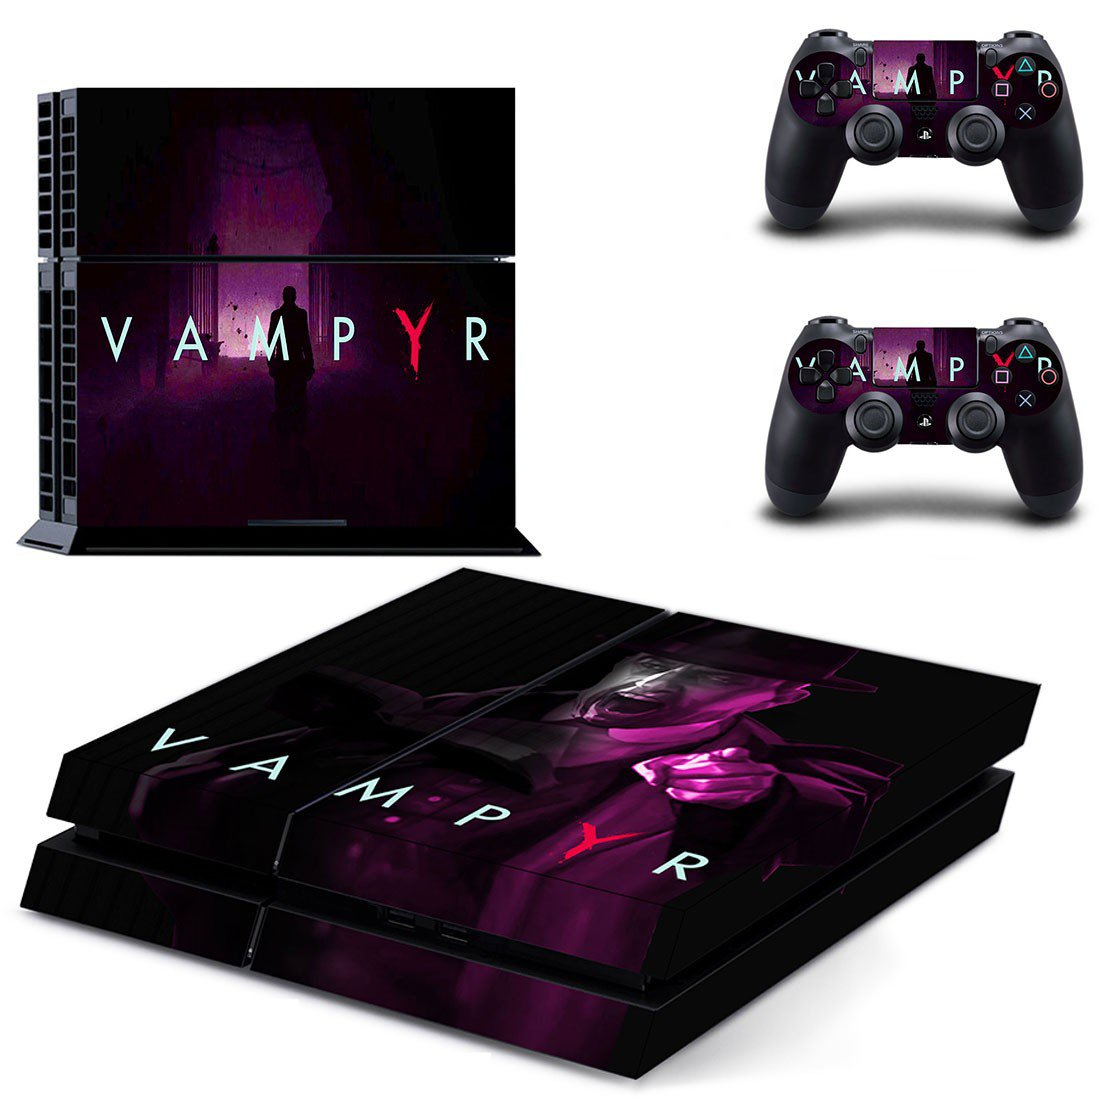 Vampyr decal skin sticker for PS4 console and controllers